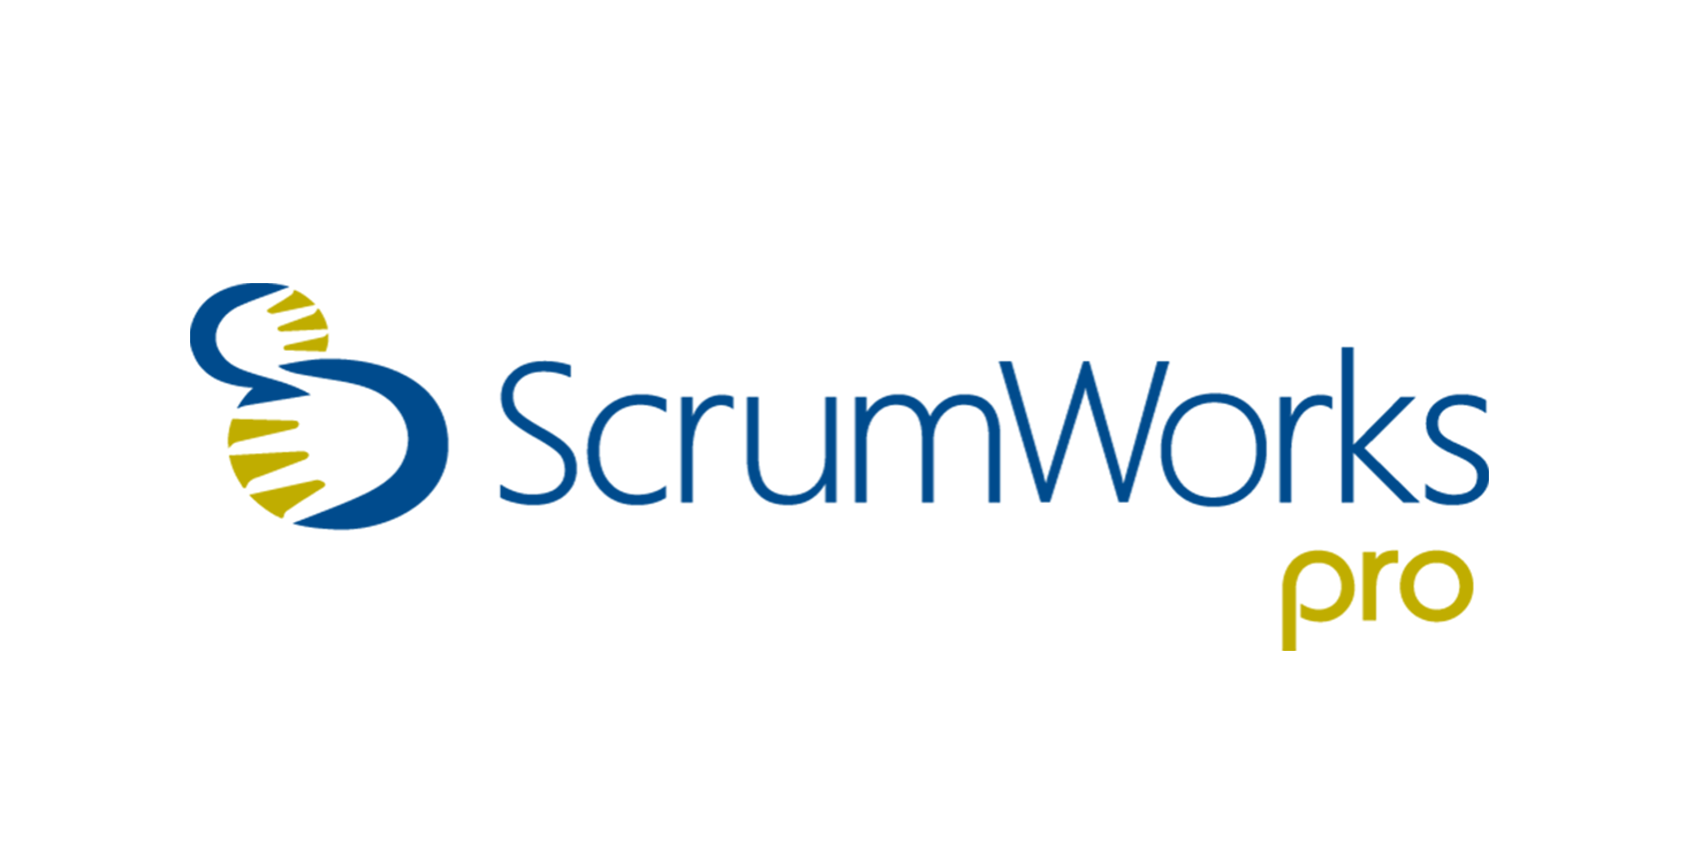 ScrumWorks ProProduct Overview